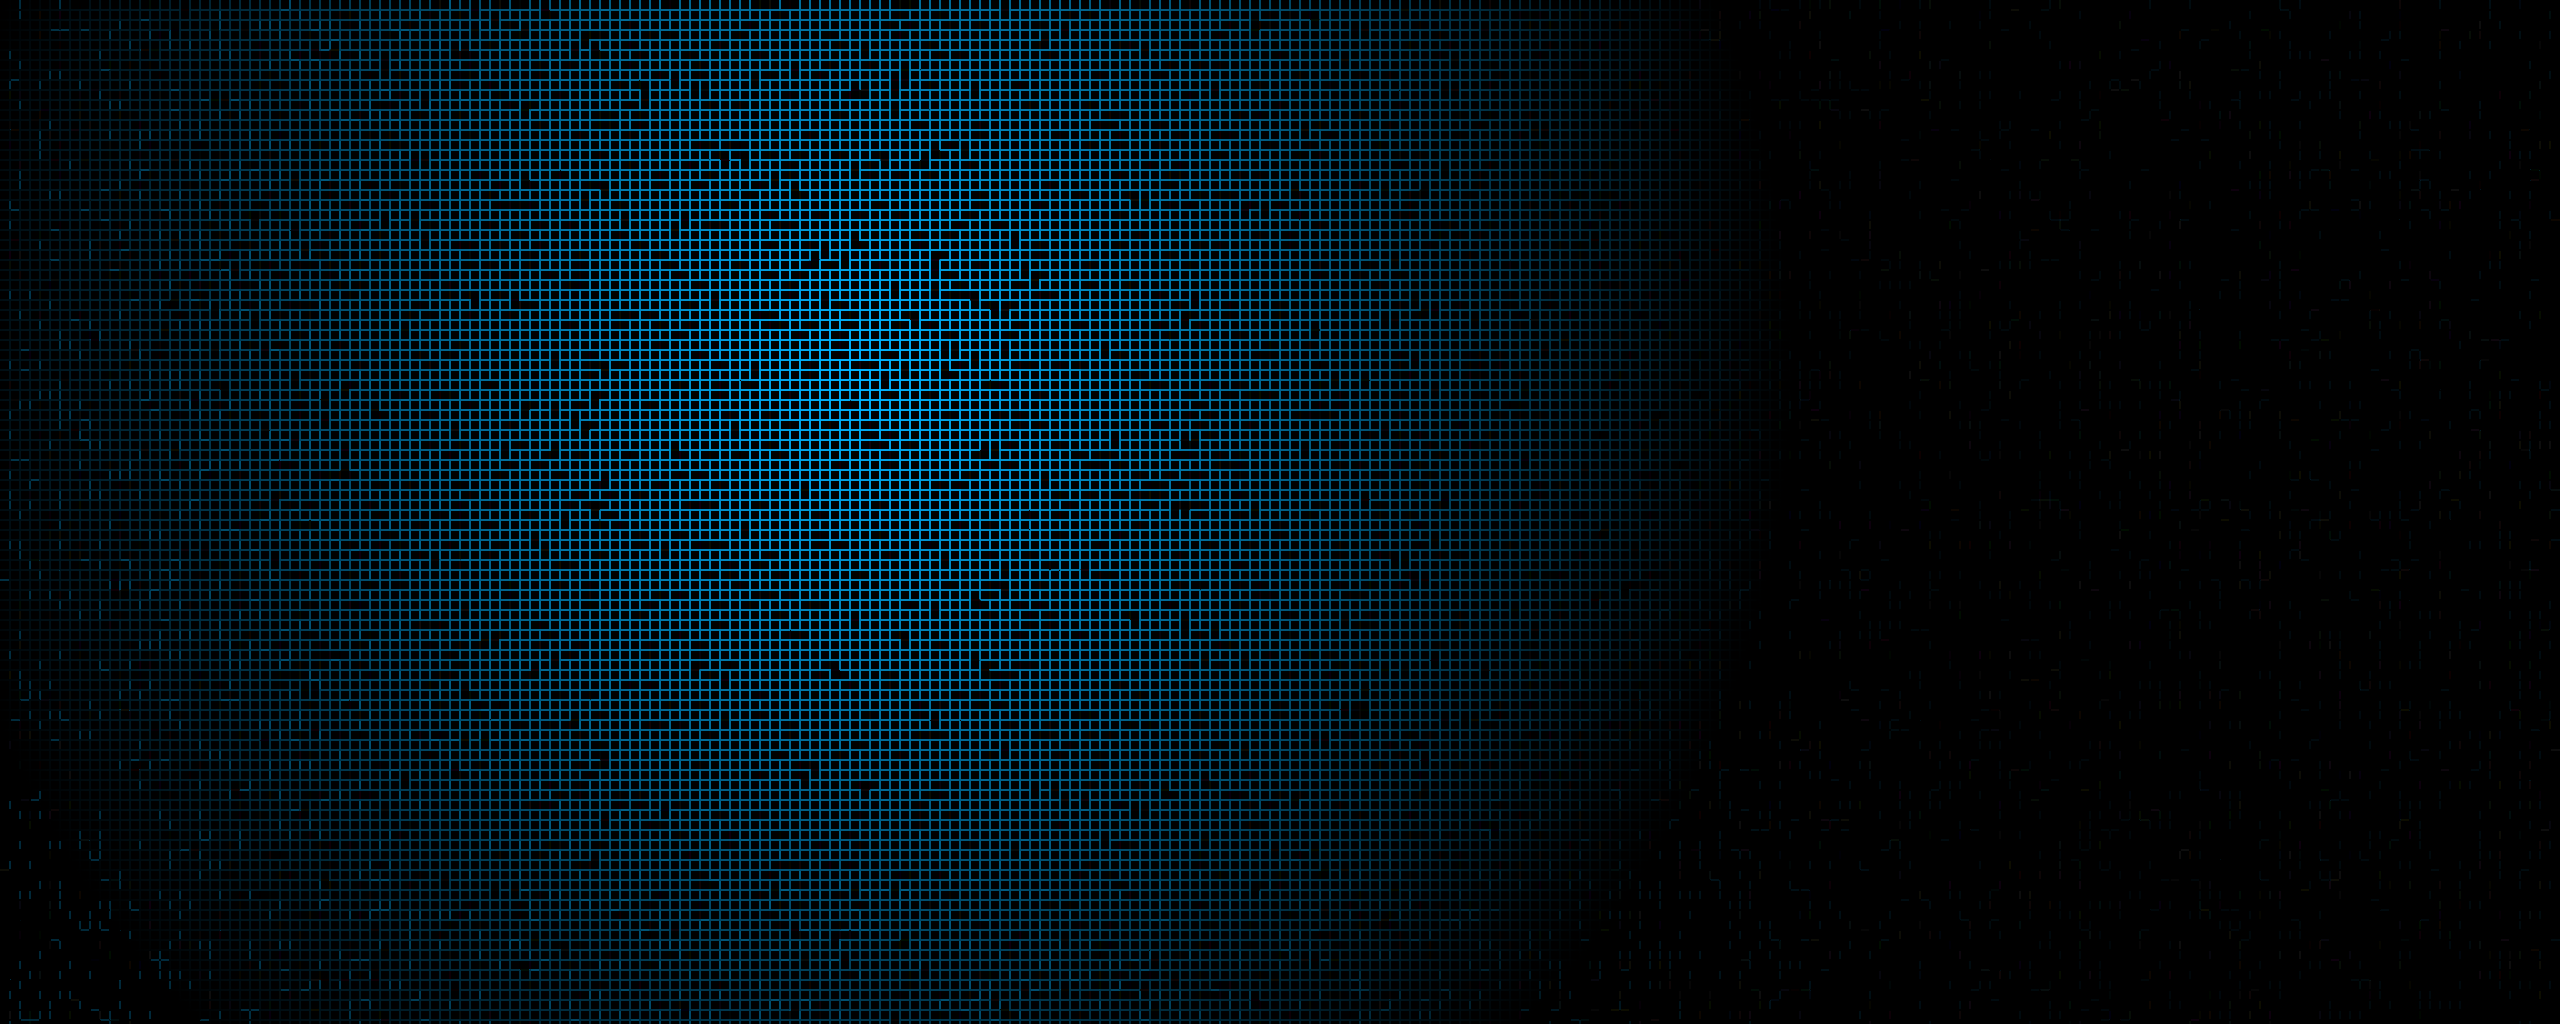 General 2560x1024 Abstract Multiple Display Pattern Gradient Texture Blue Dark Black Hd Wallpaper Abstract Blue Wallpapers